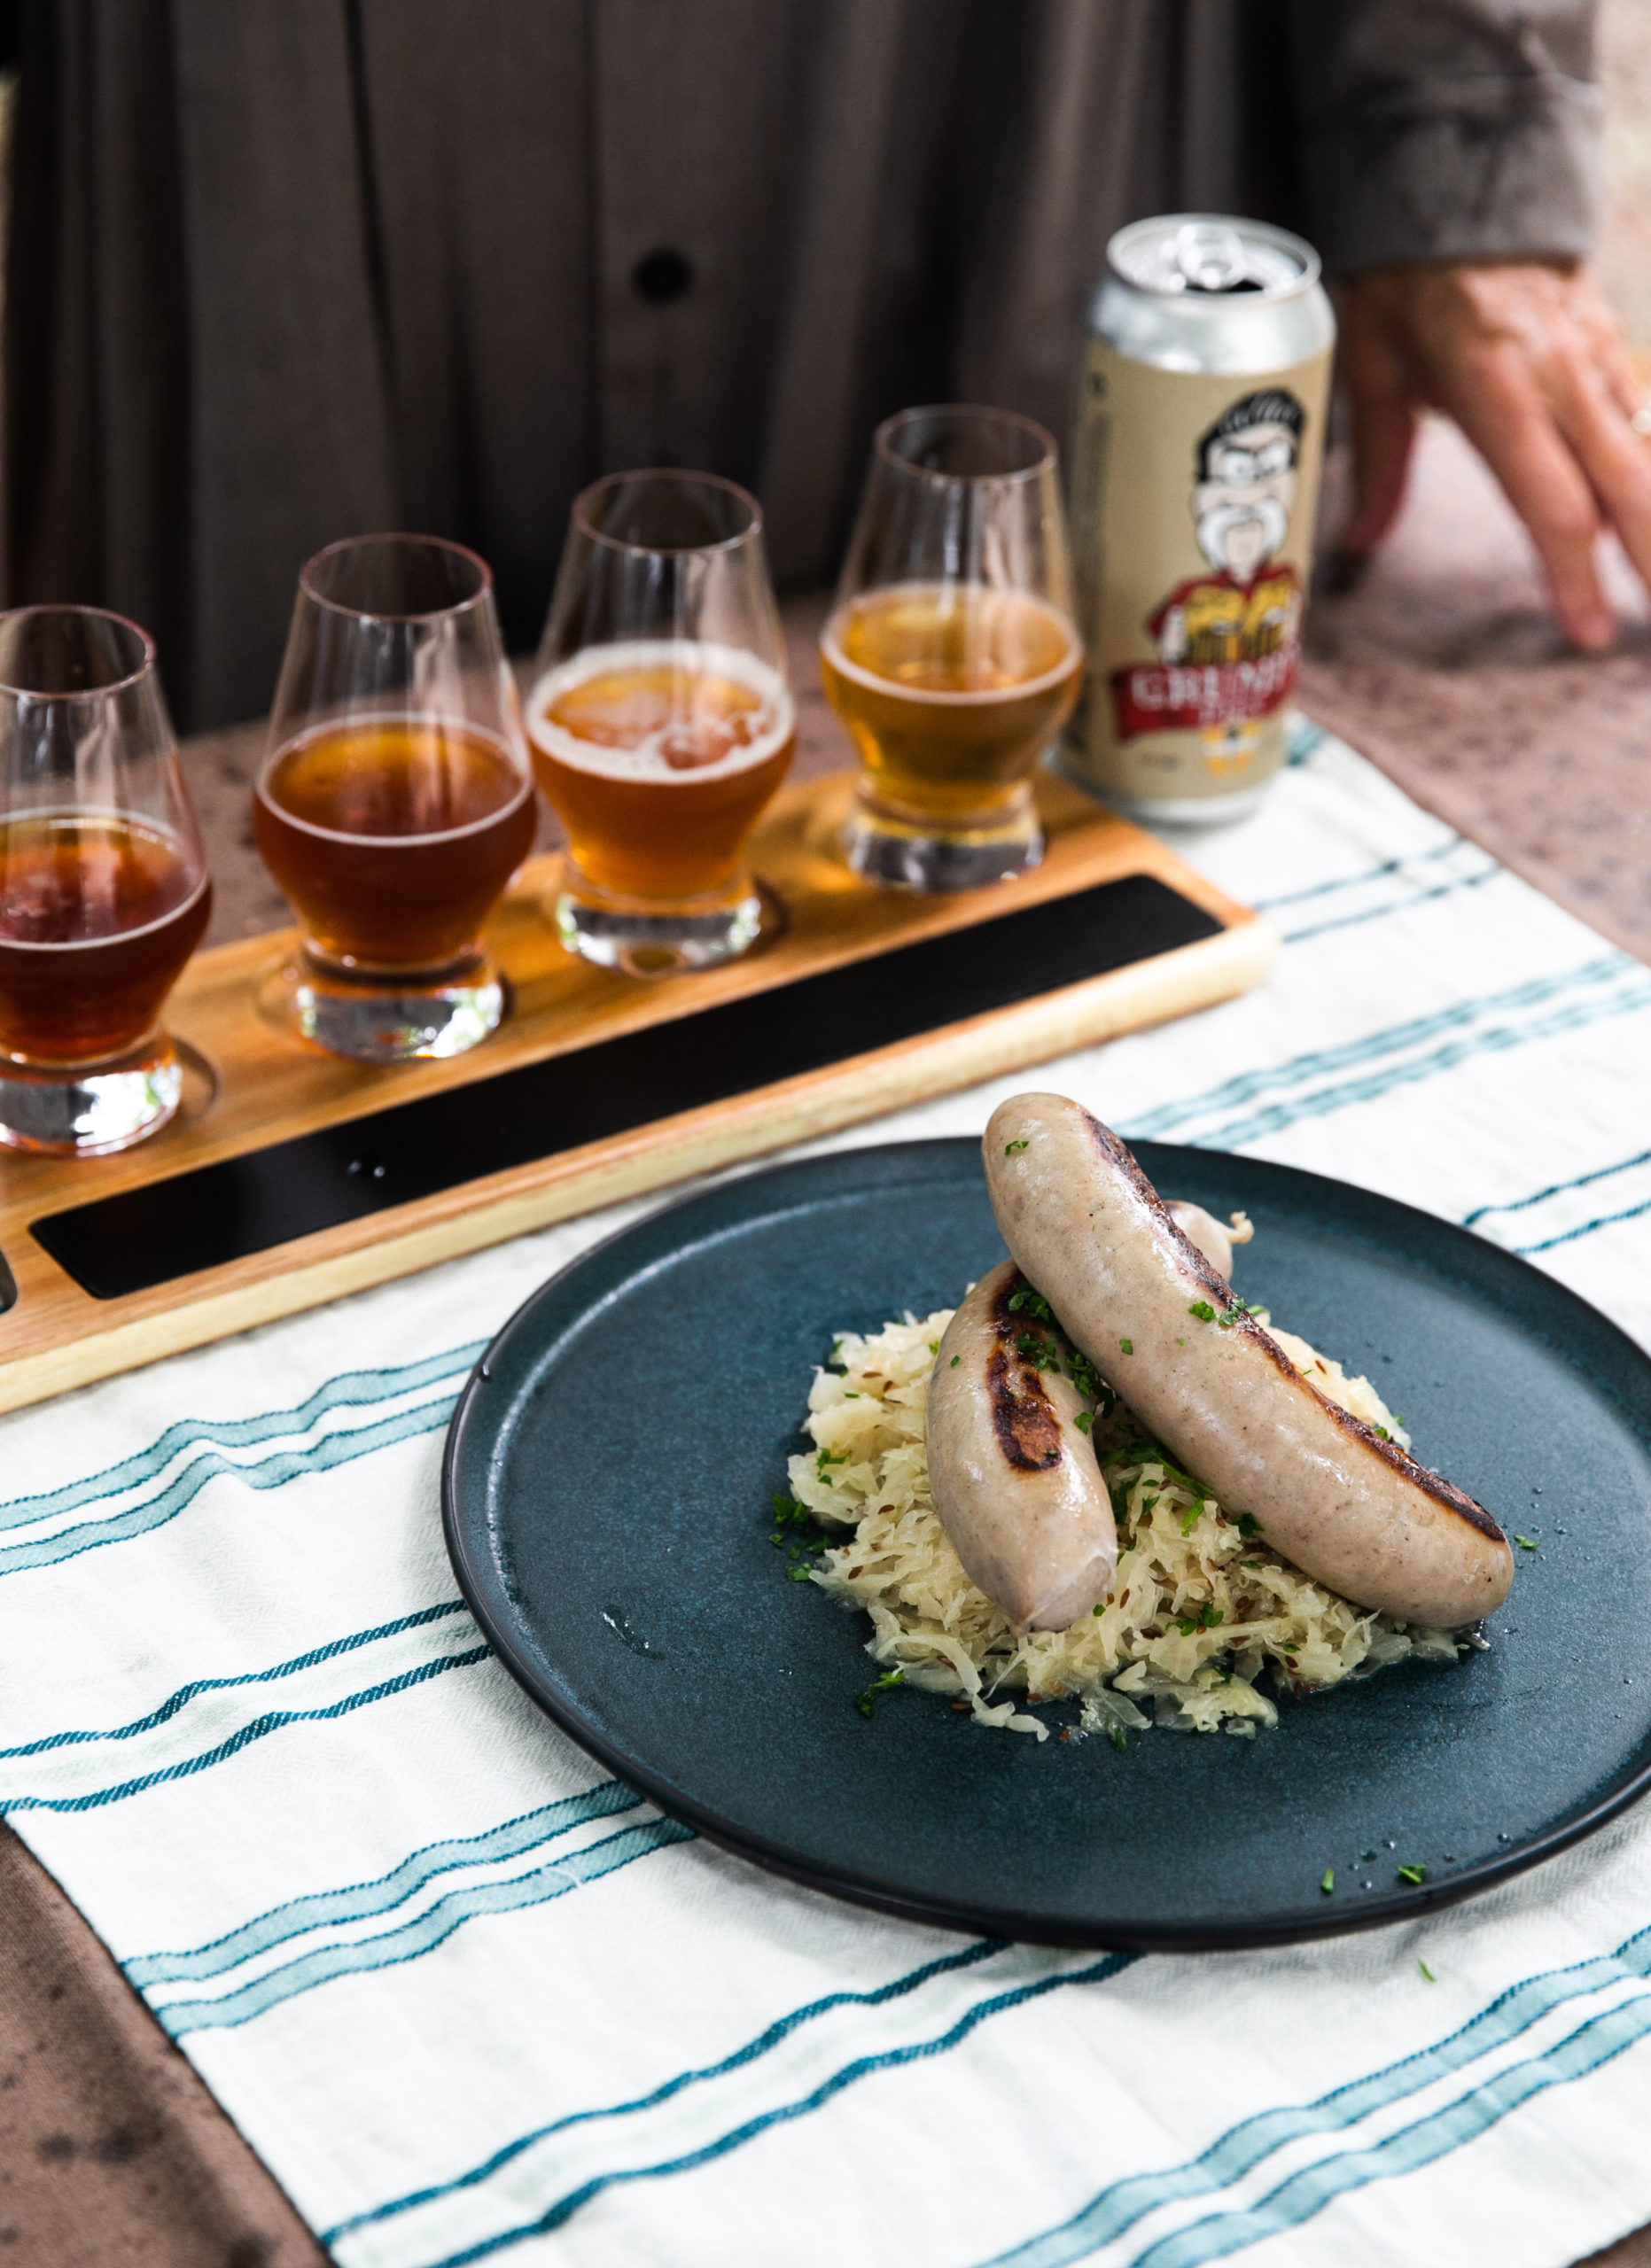 Bangers with beer braised sauerkraut is one of the recipes in the February book from the Loaves & Fishes Farm Series.